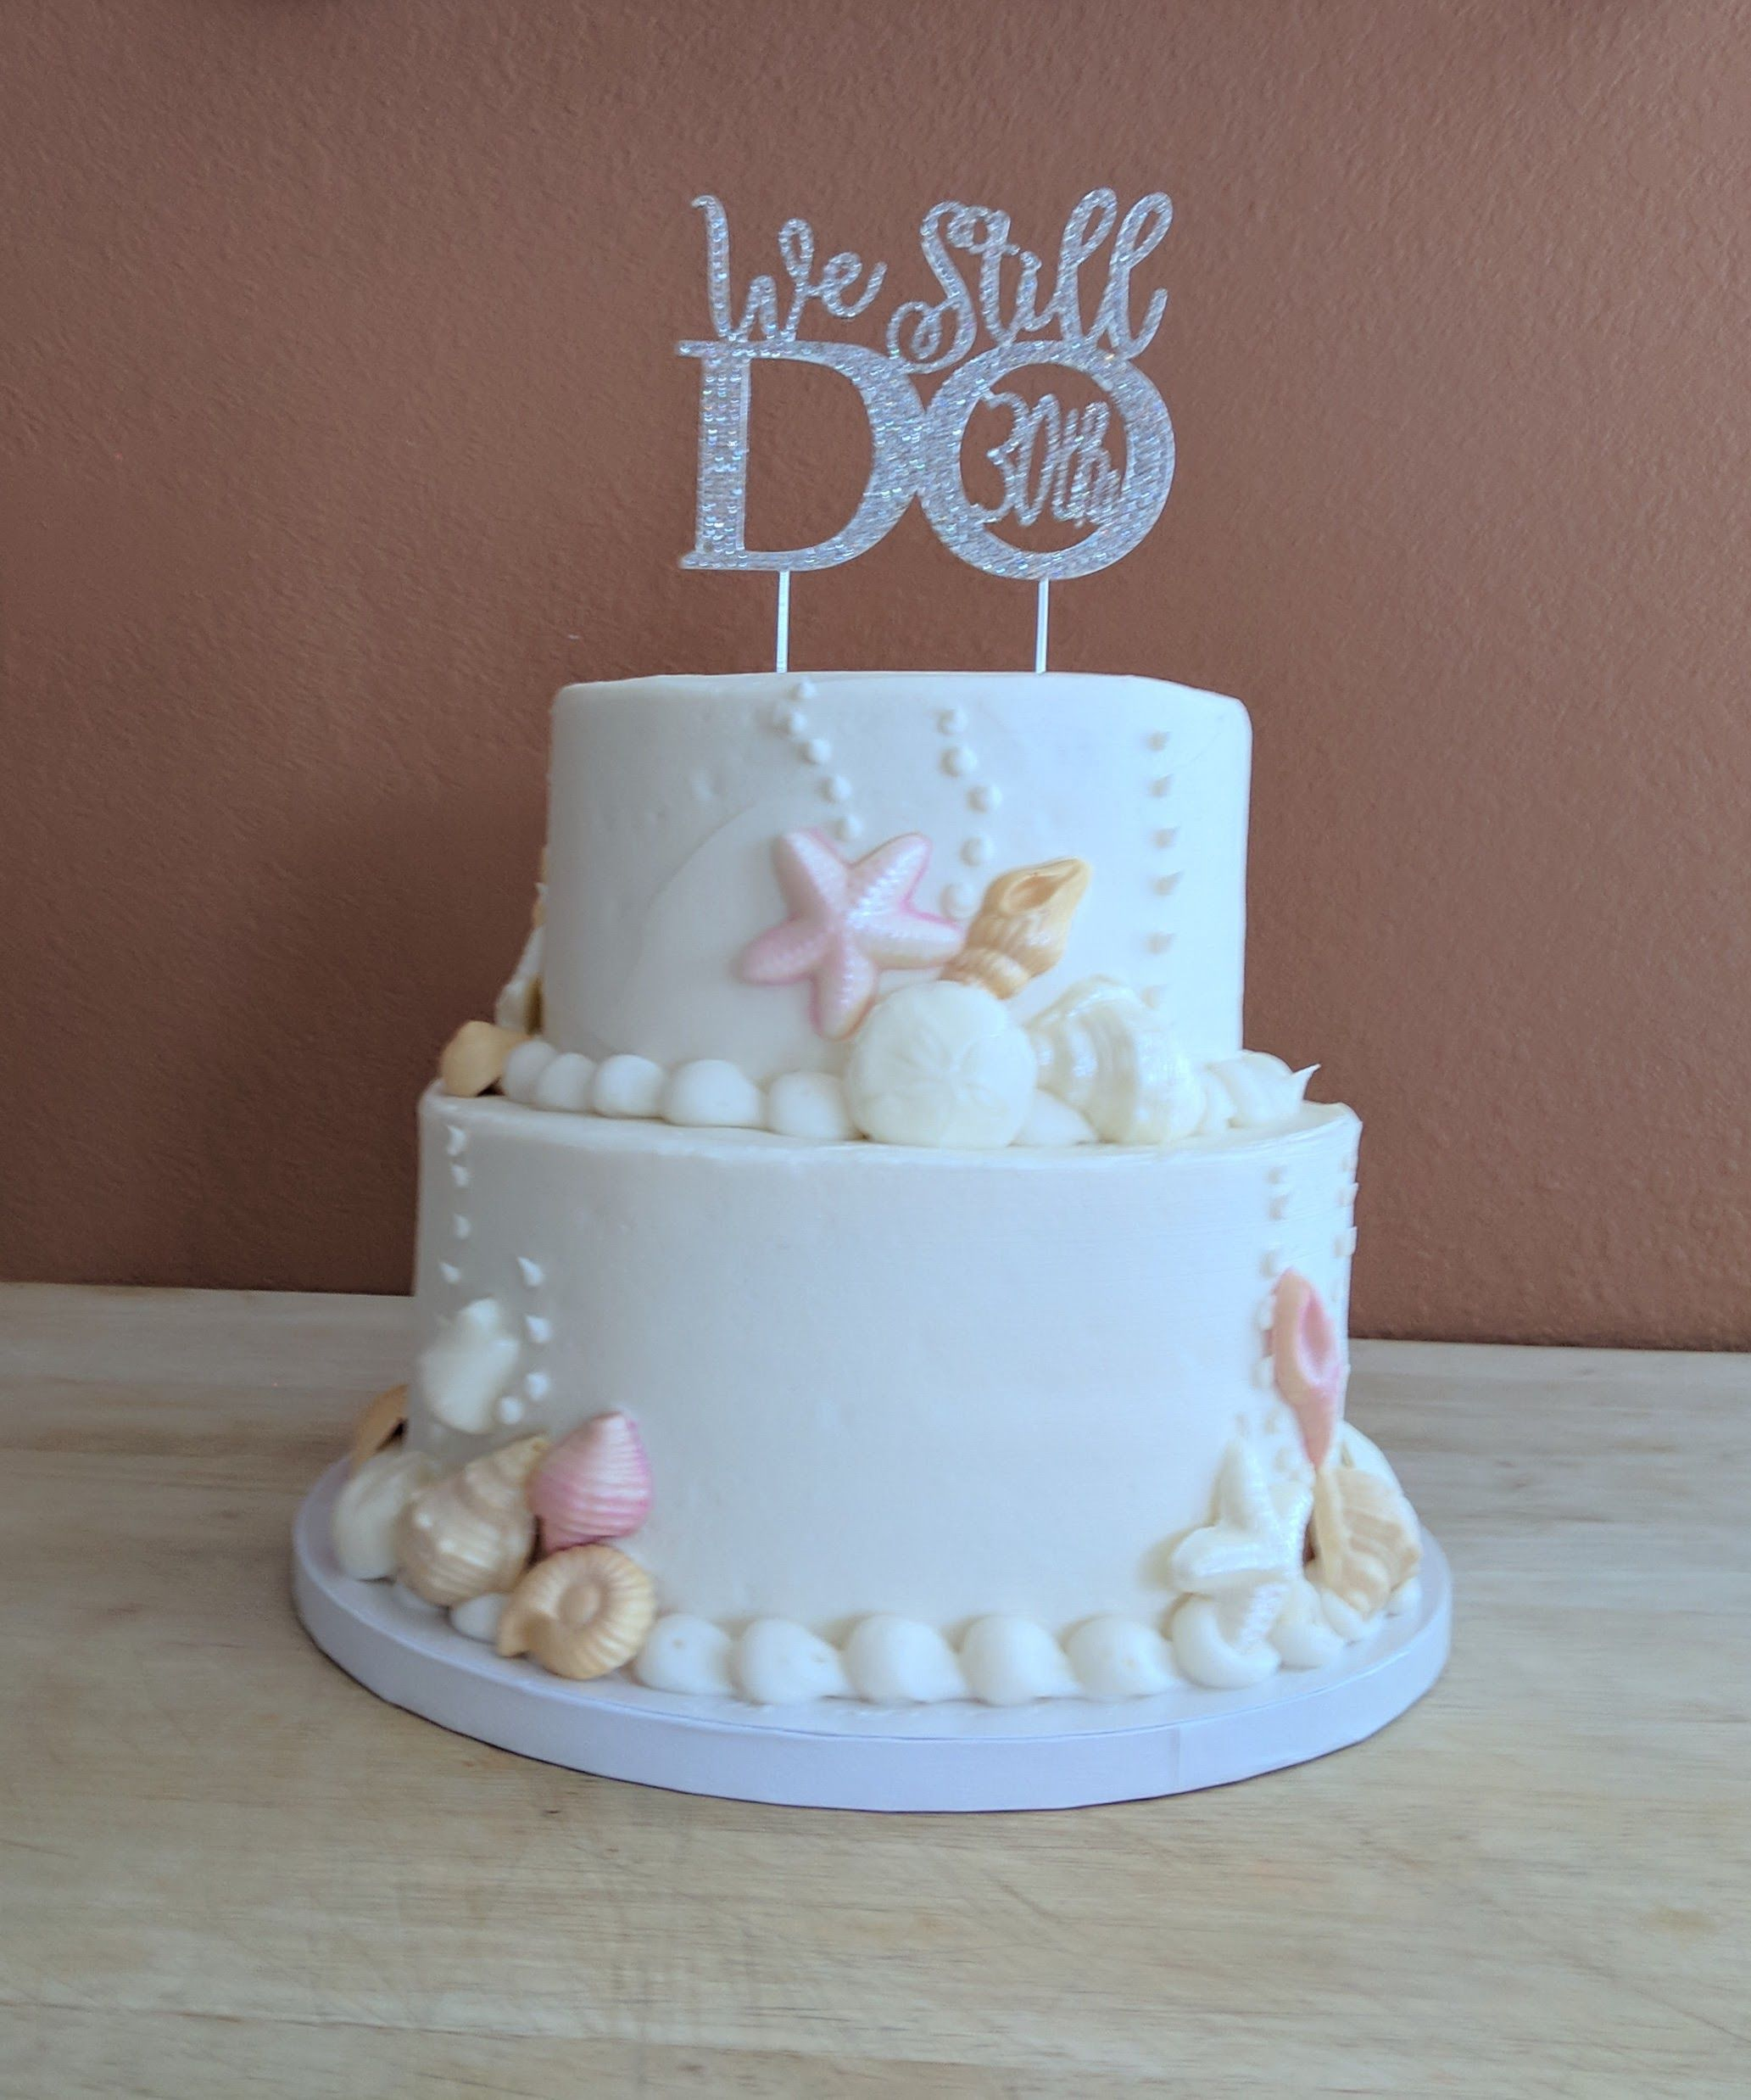 Our 30th Wedding Anniversary Vow Renewal Cake We Still Do